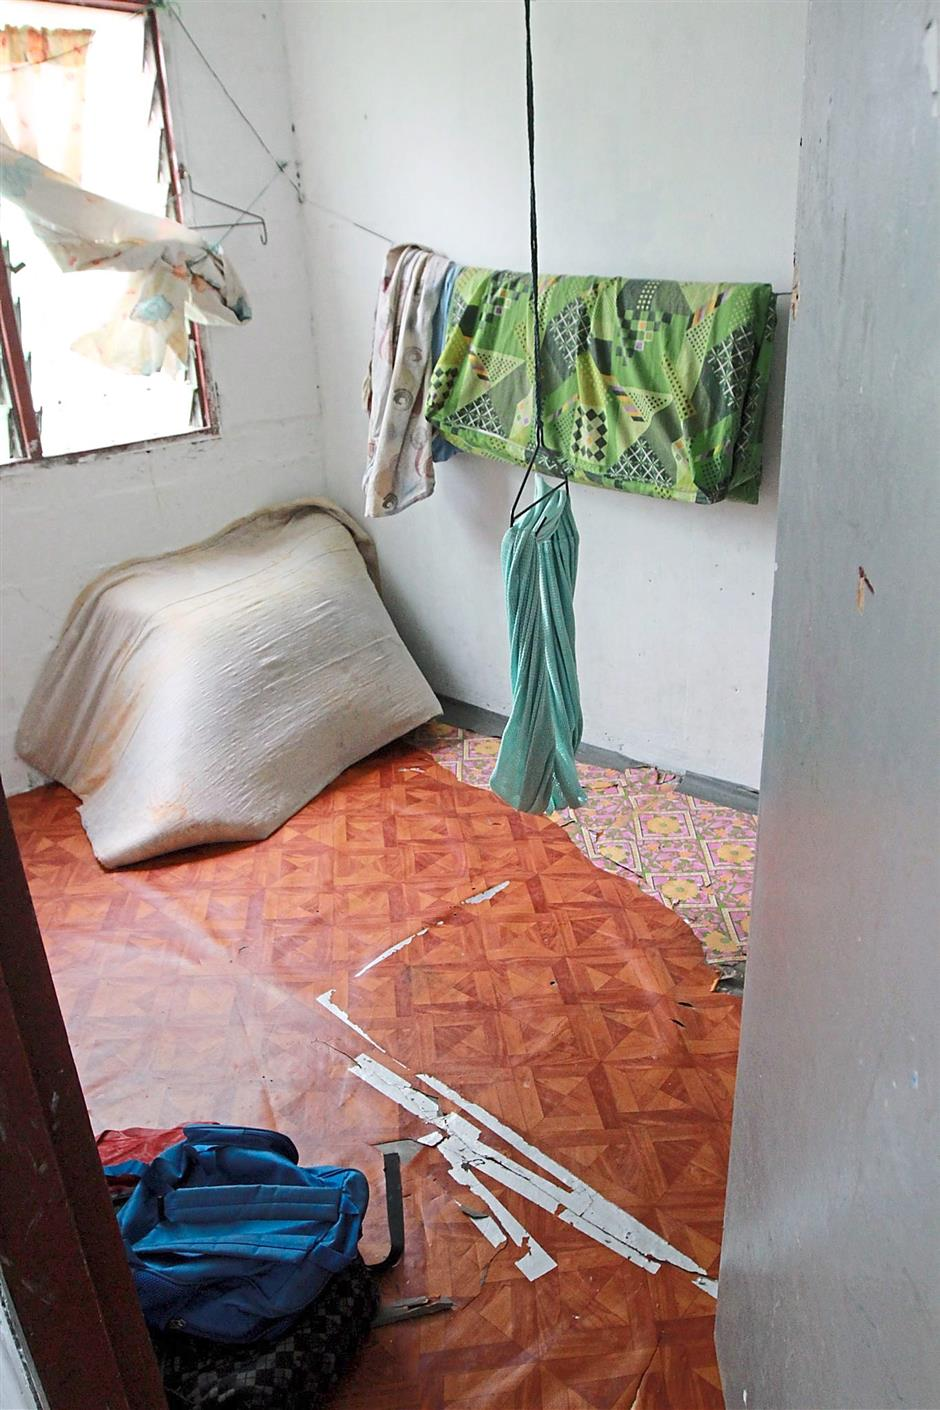 Stripped to the basics: A bare low-cost flat unit occupied by Myanmarese refugee. Mattresses and mats were provided by donors. Such a unit is often taken up two or three families.